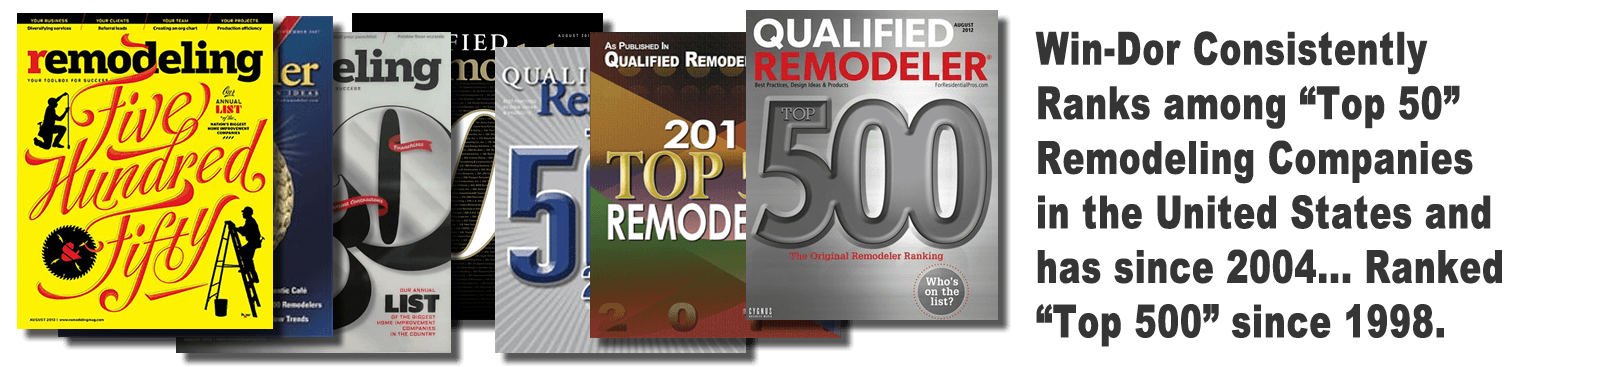 qualified_remodeler_remodeling_magazine_rankings